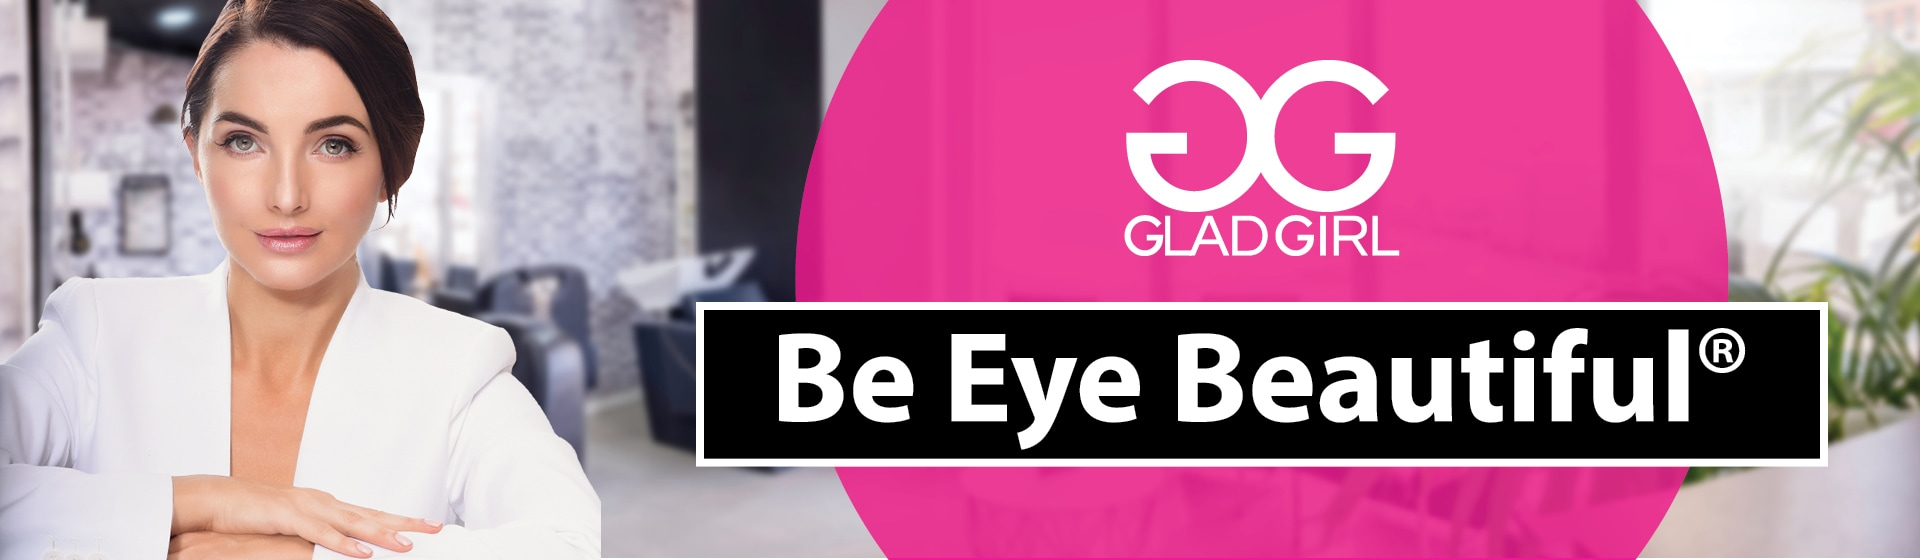 Be Eye Beautiful #GladGirl.